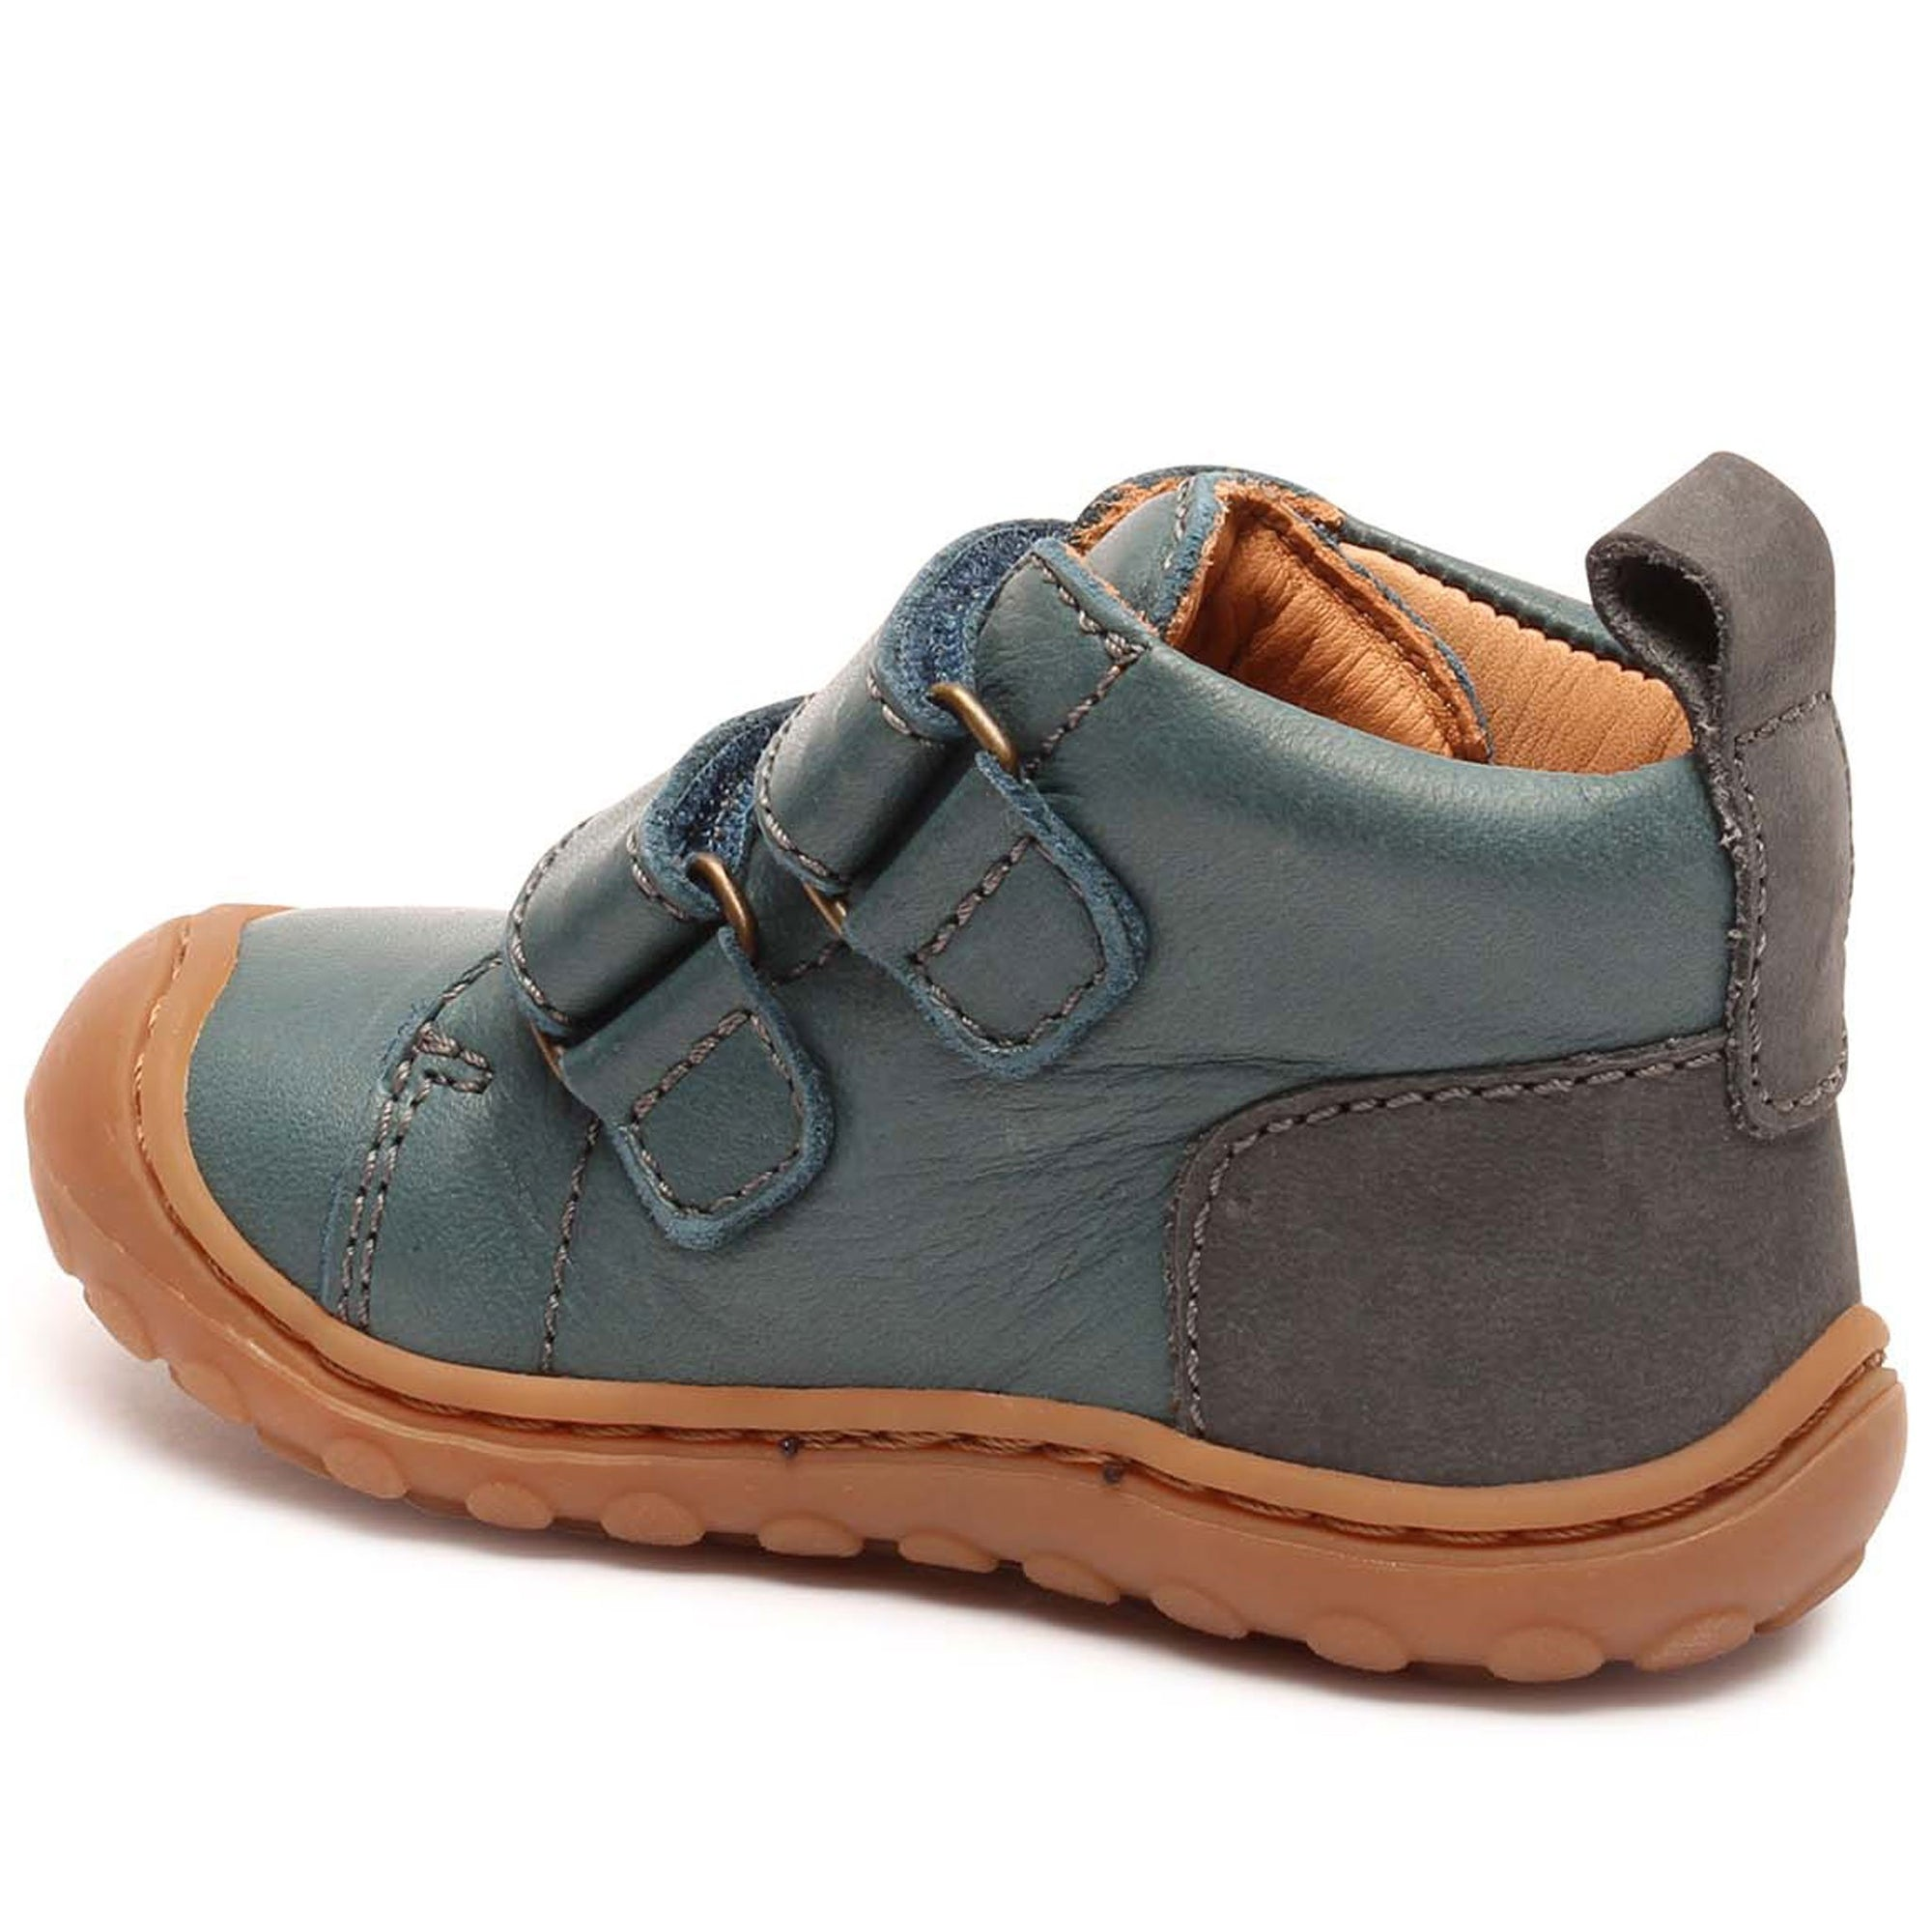 Ghete First Step Bisgaard piele - Umo Teal-Bisgaard-HipHip.ro